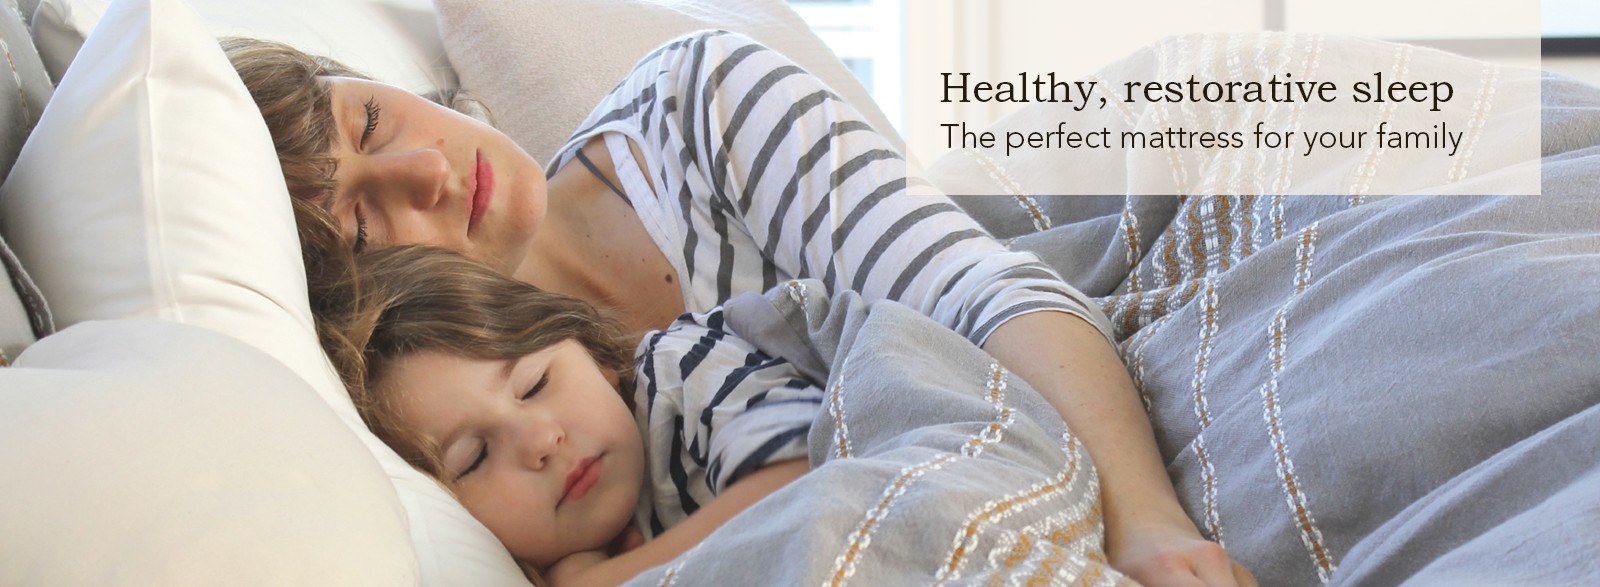 Healthy restorative sleep